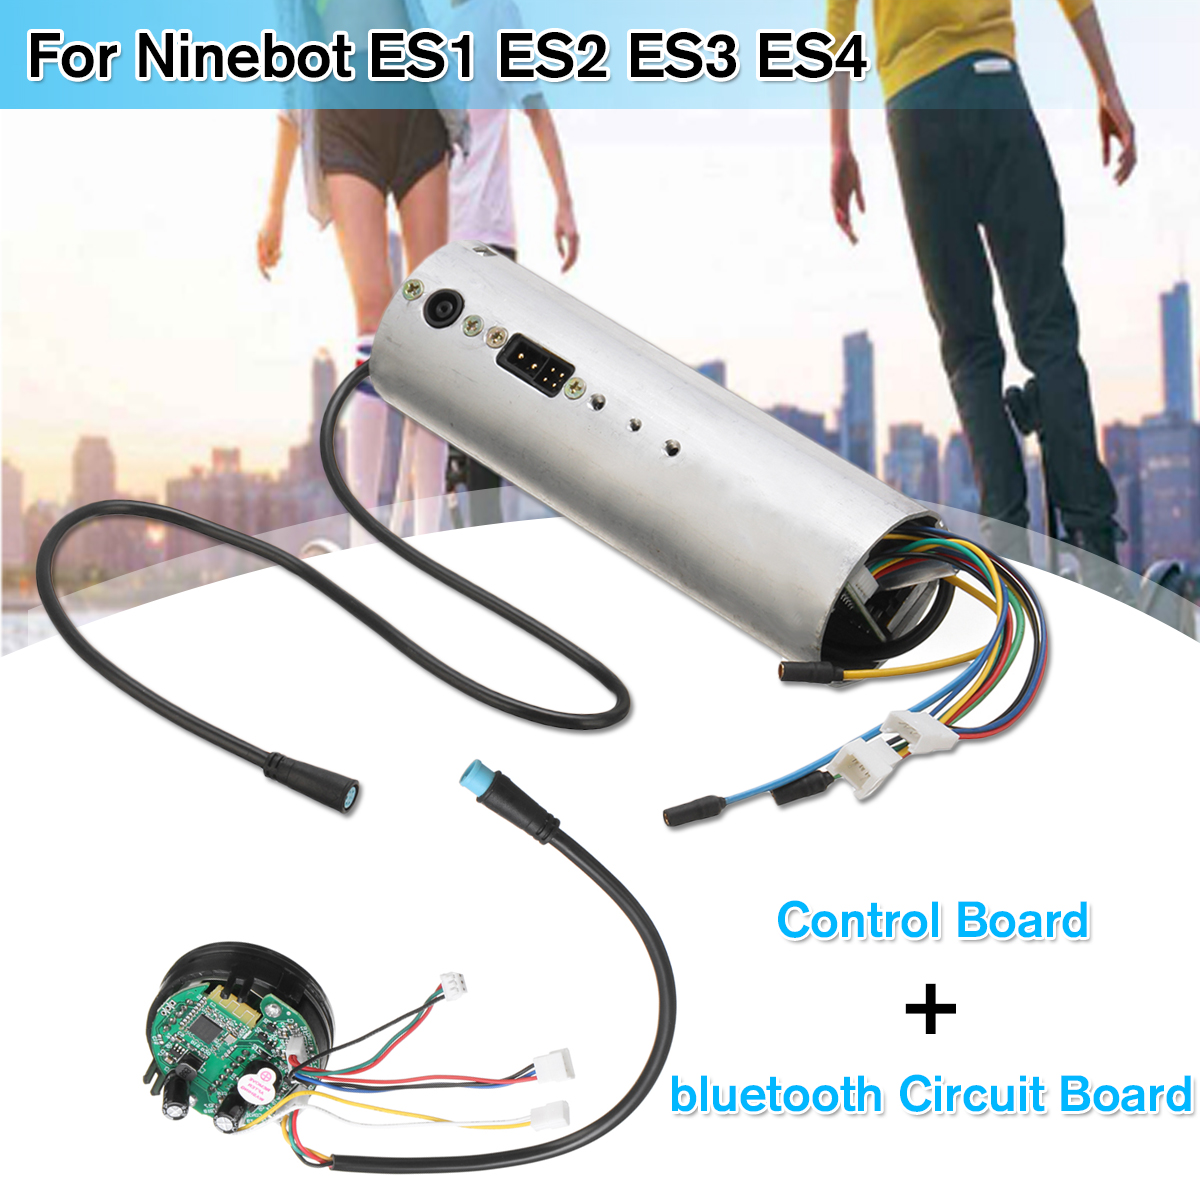 Control Board bluetooth Circuit Board Motherboard Controller for Ninebot  ES1 ES2 ES3 ES4 Electric Scooter Replacement Parts